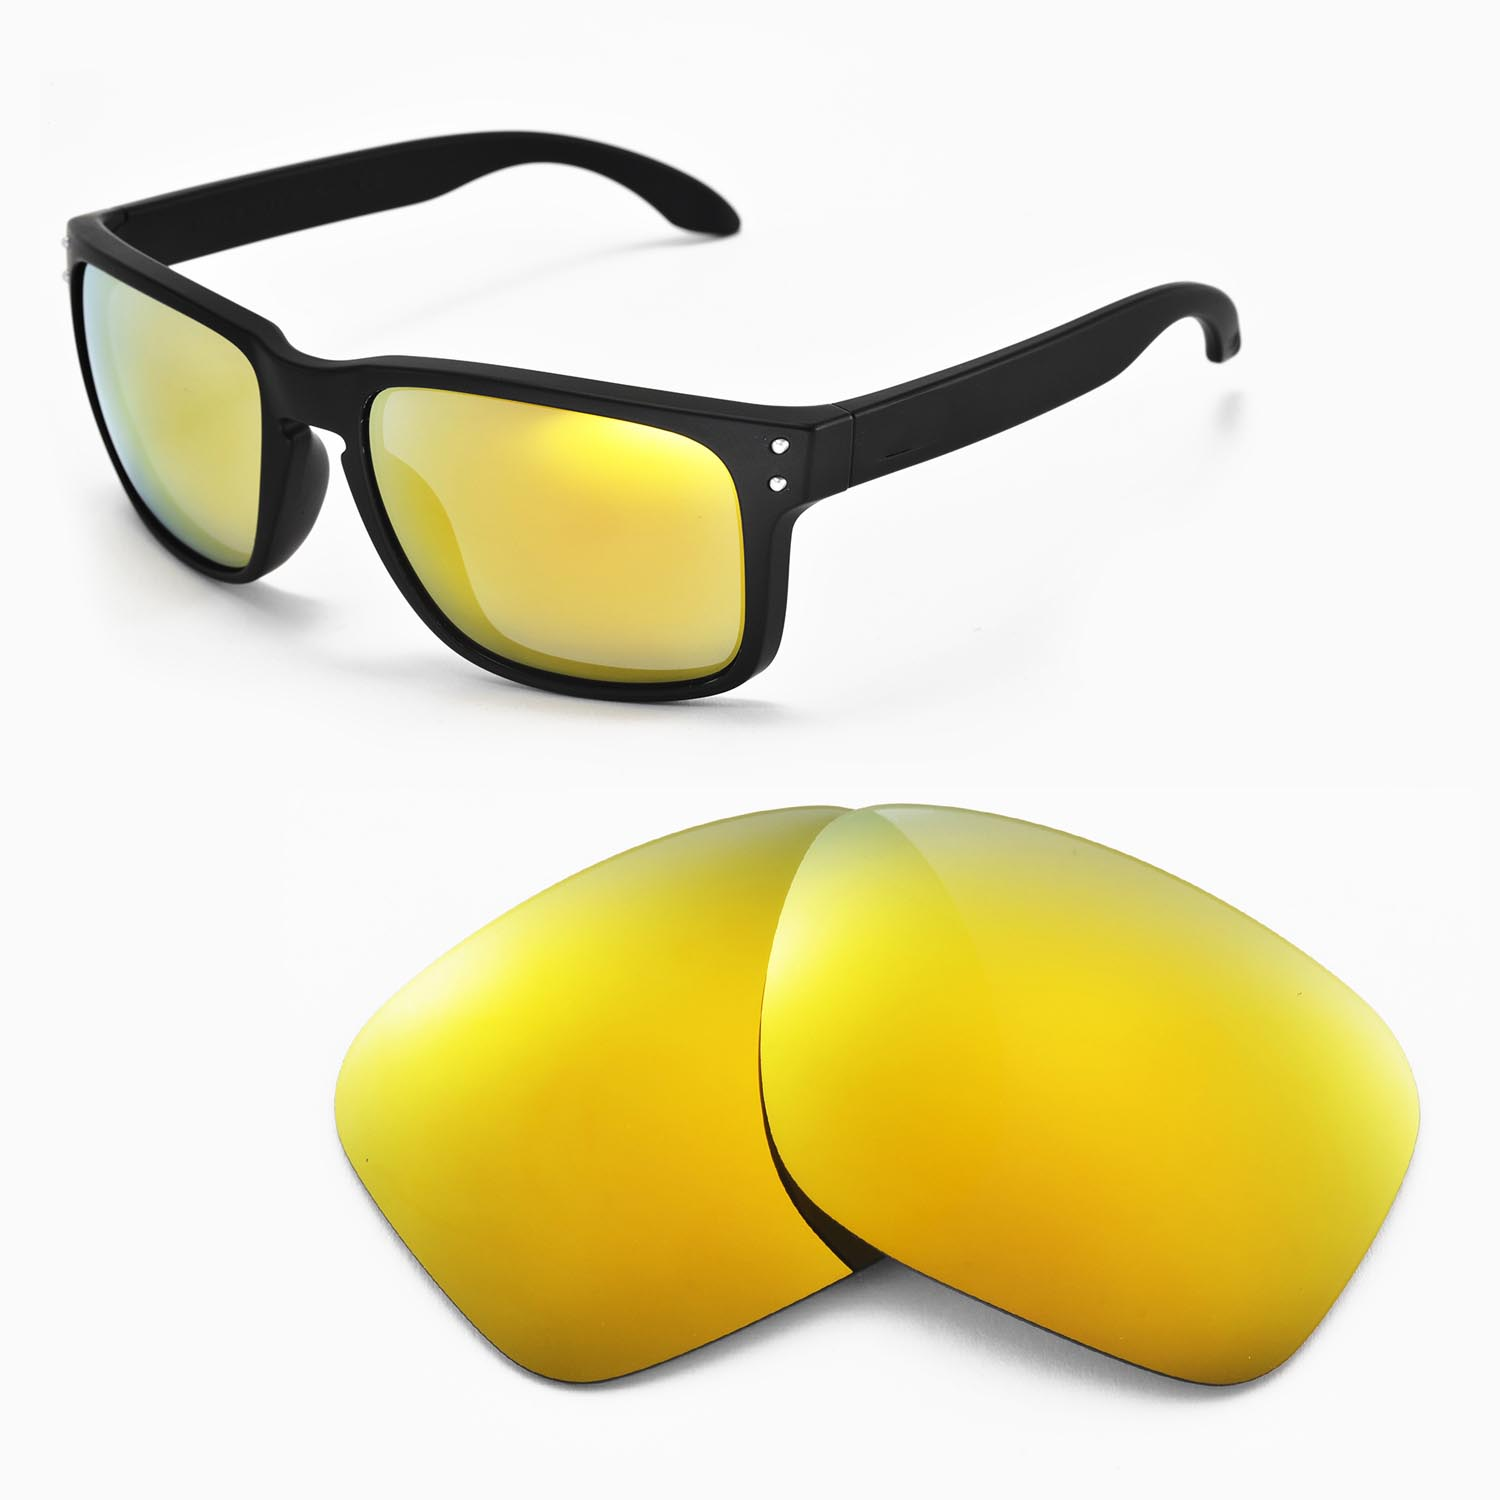 68f6db9338c Details about New Walleva Polarized 24K Gold Replacement Lenses For Oakley  Holbrook Sunglasses